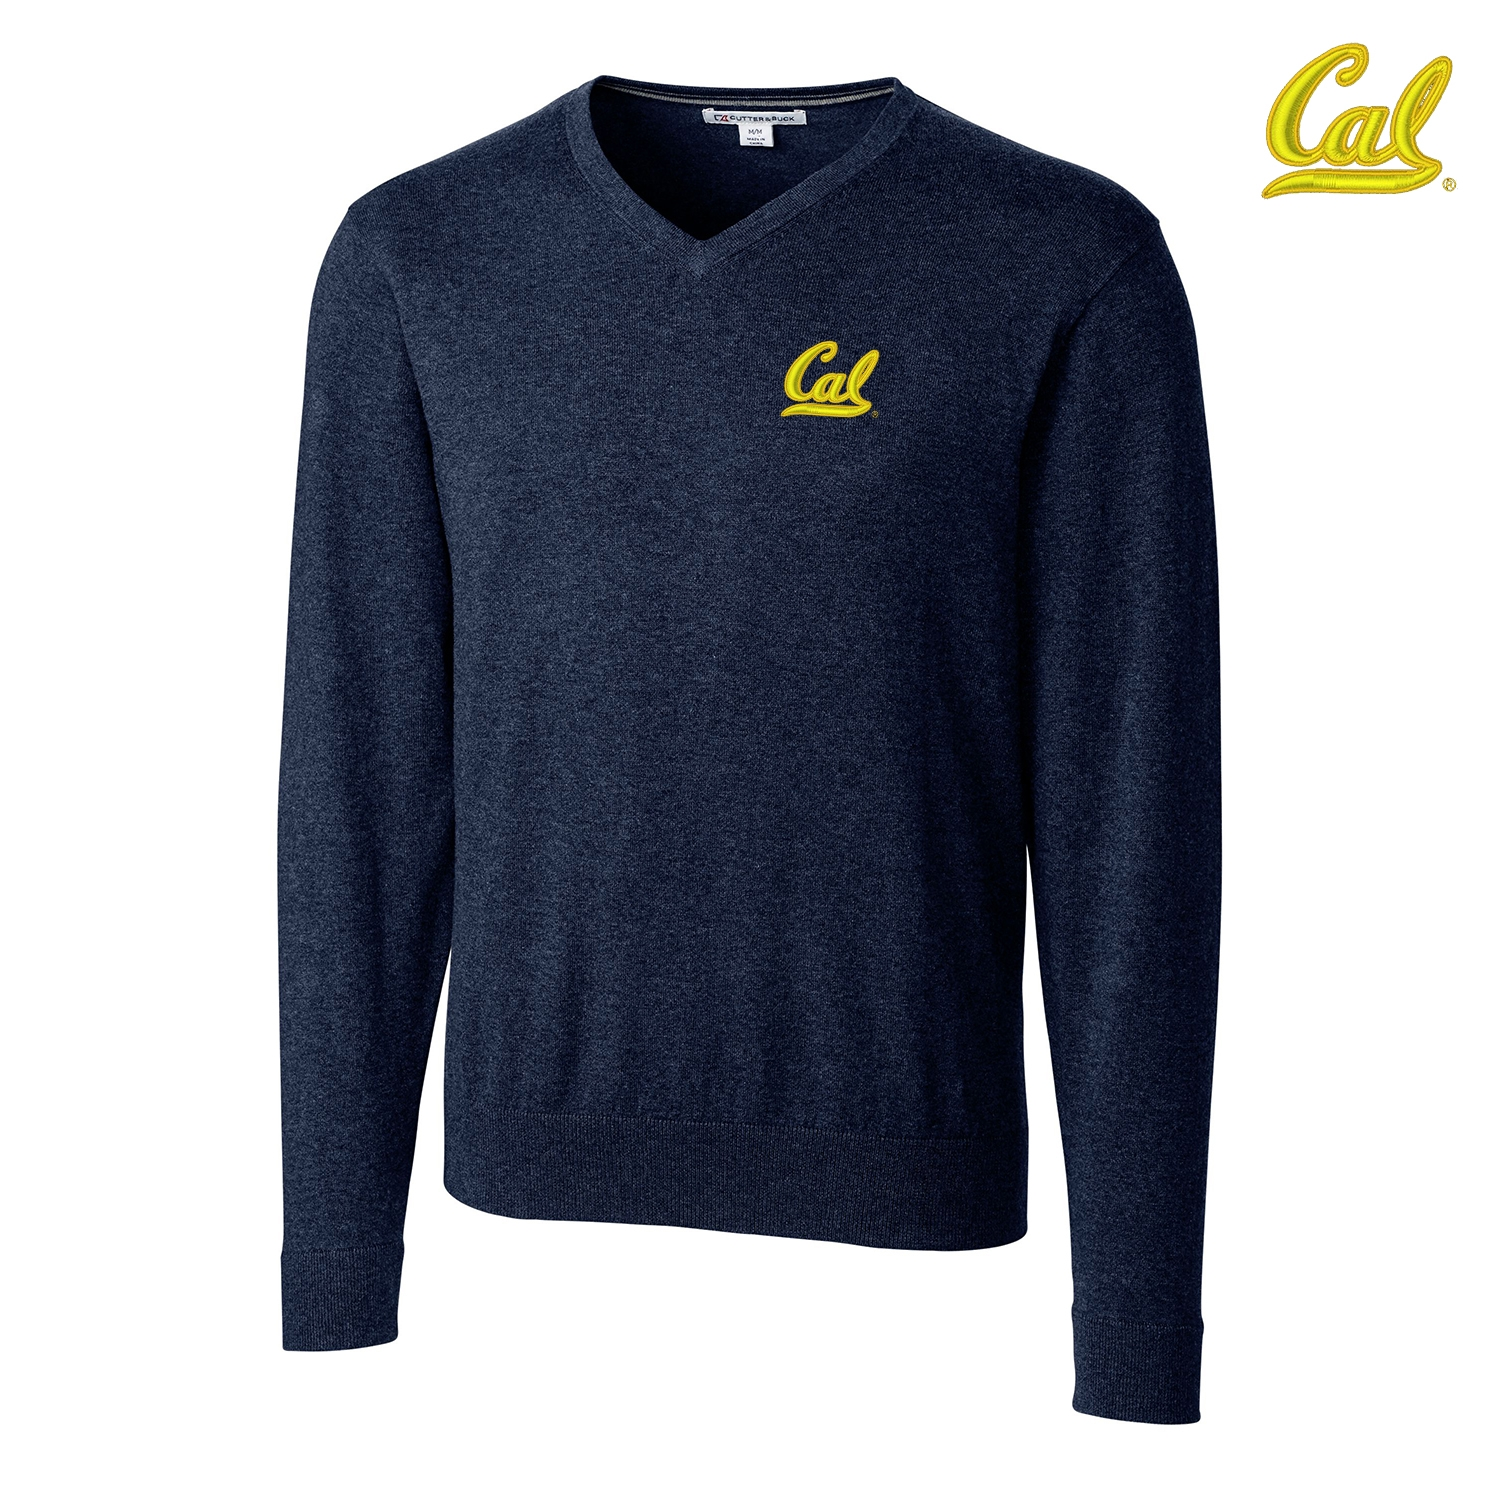 University of California Berkeley Lakemont Vneck Sweater